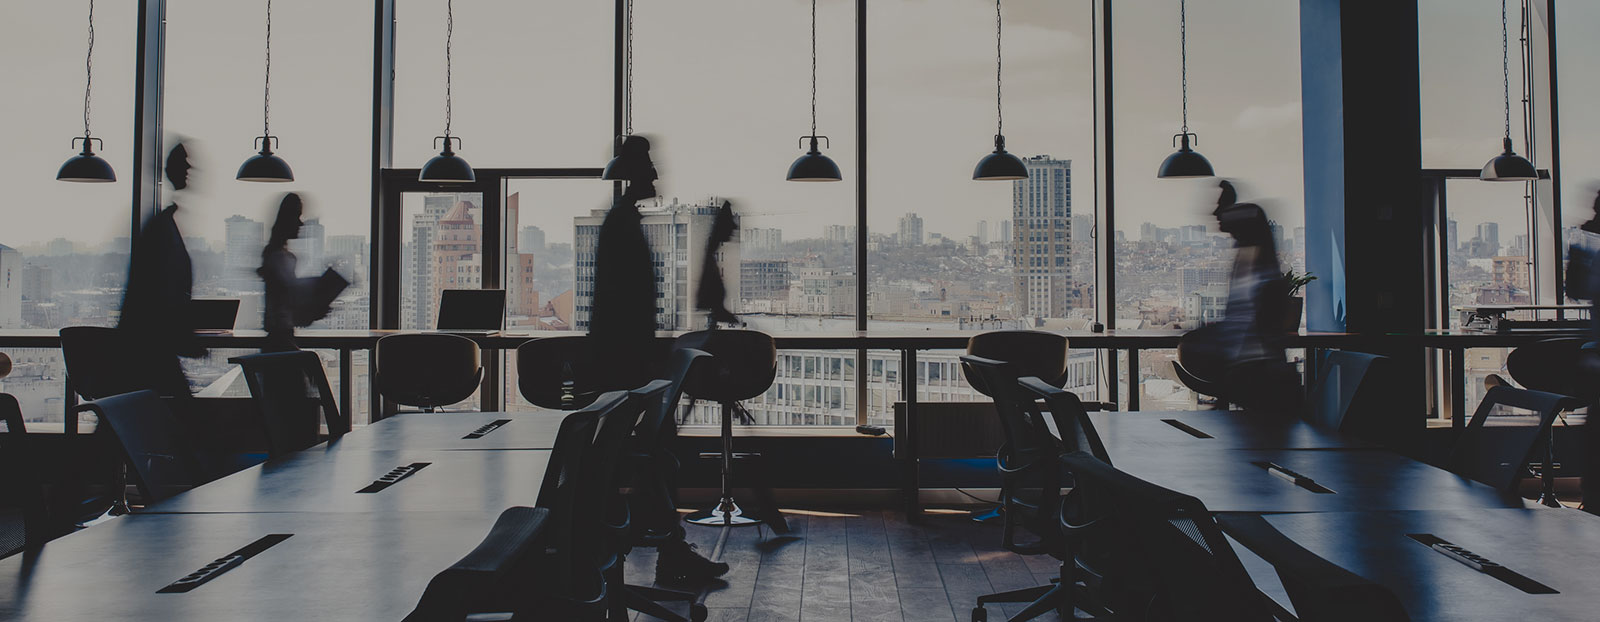 Commercial & Business Transactions Header Background - Office with Staff Walking by Blurred